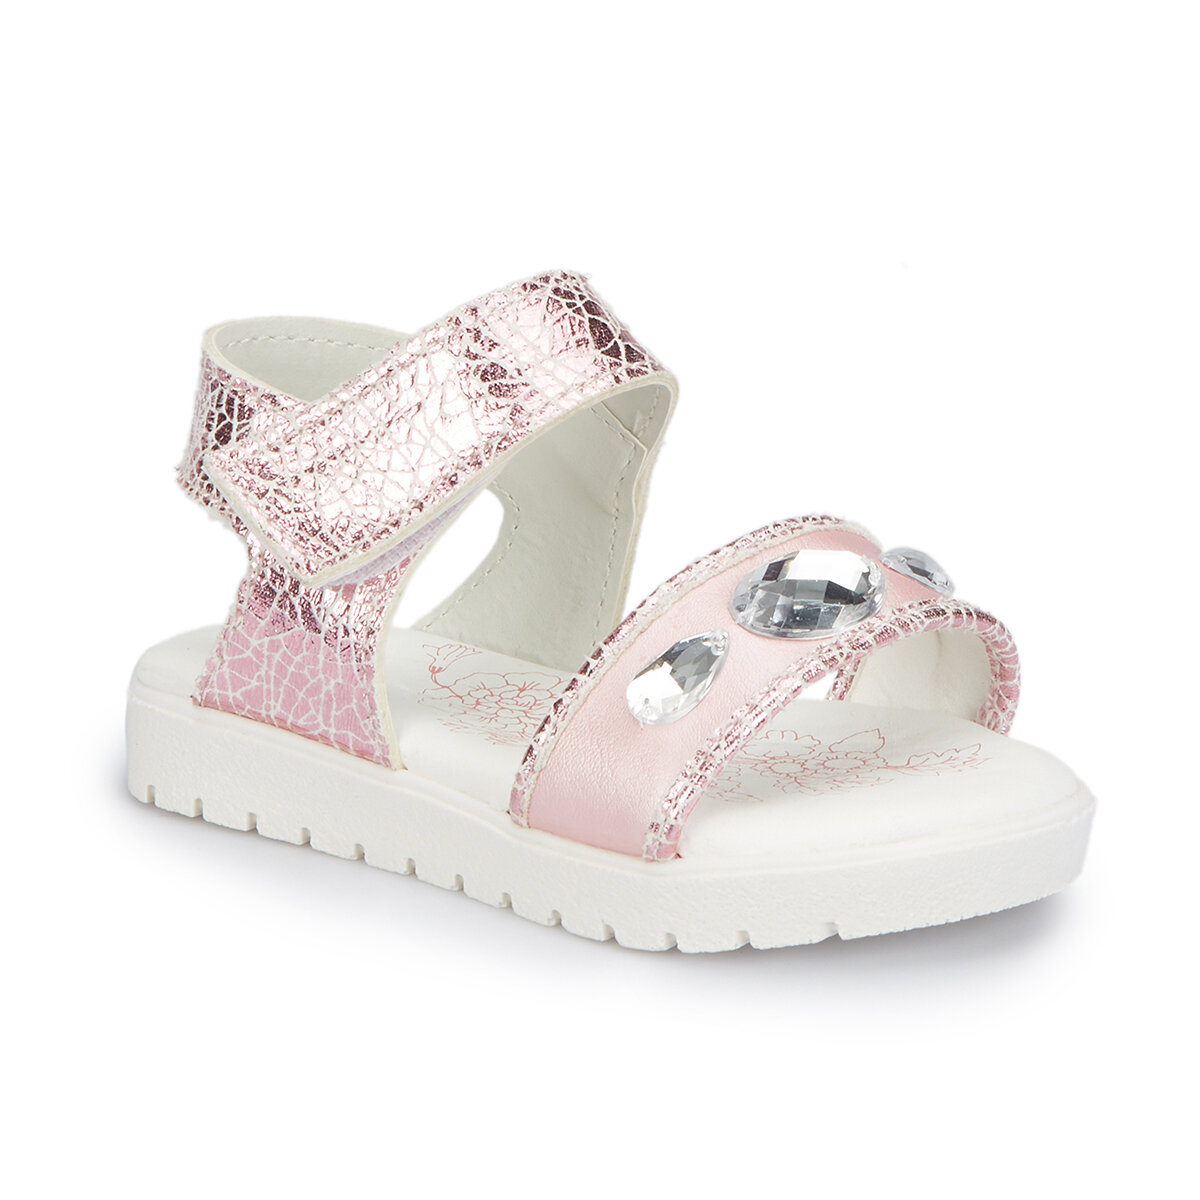 FLO 81.510089.B Pink Female Child Without Spikes Sandals Polaris